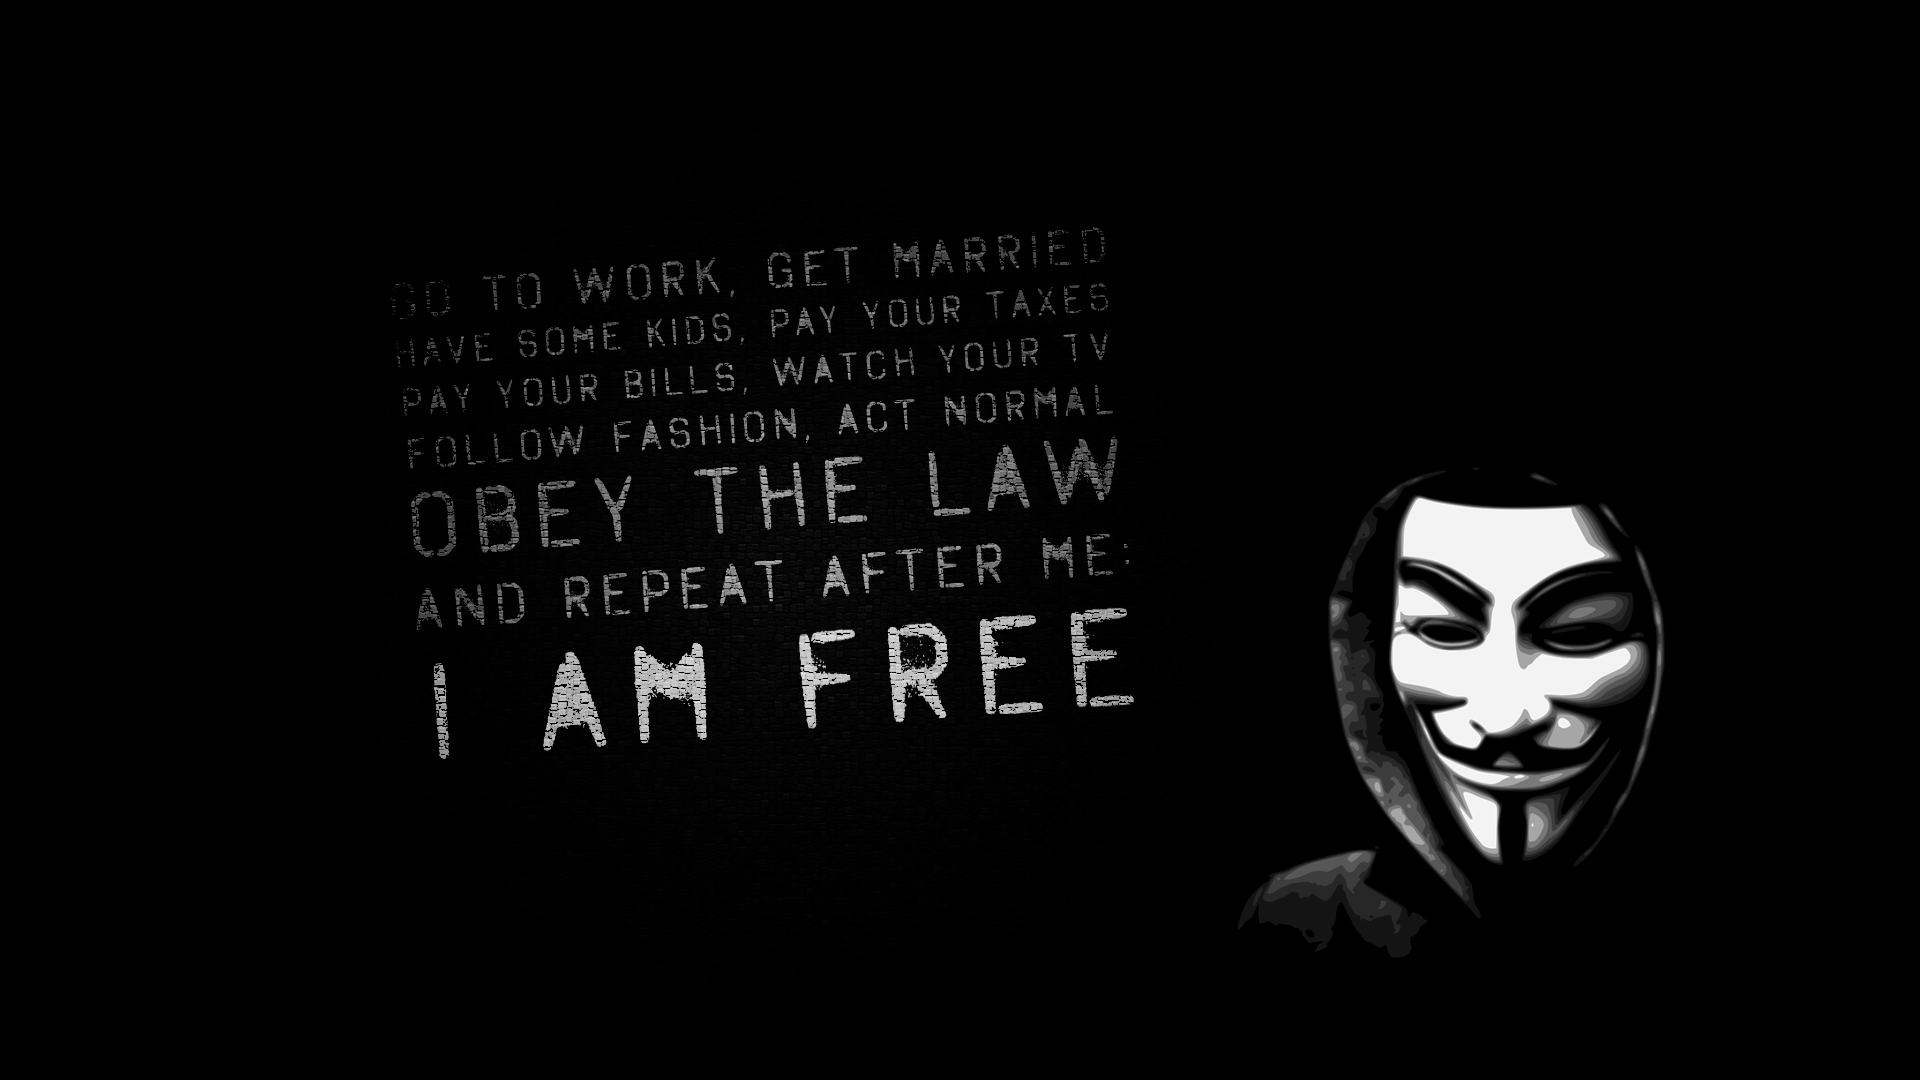 Pin By Sarahlogan Boerger On Inspiration V For Vendetta Quotes Love Quotes Wallpaper V For Vendetta